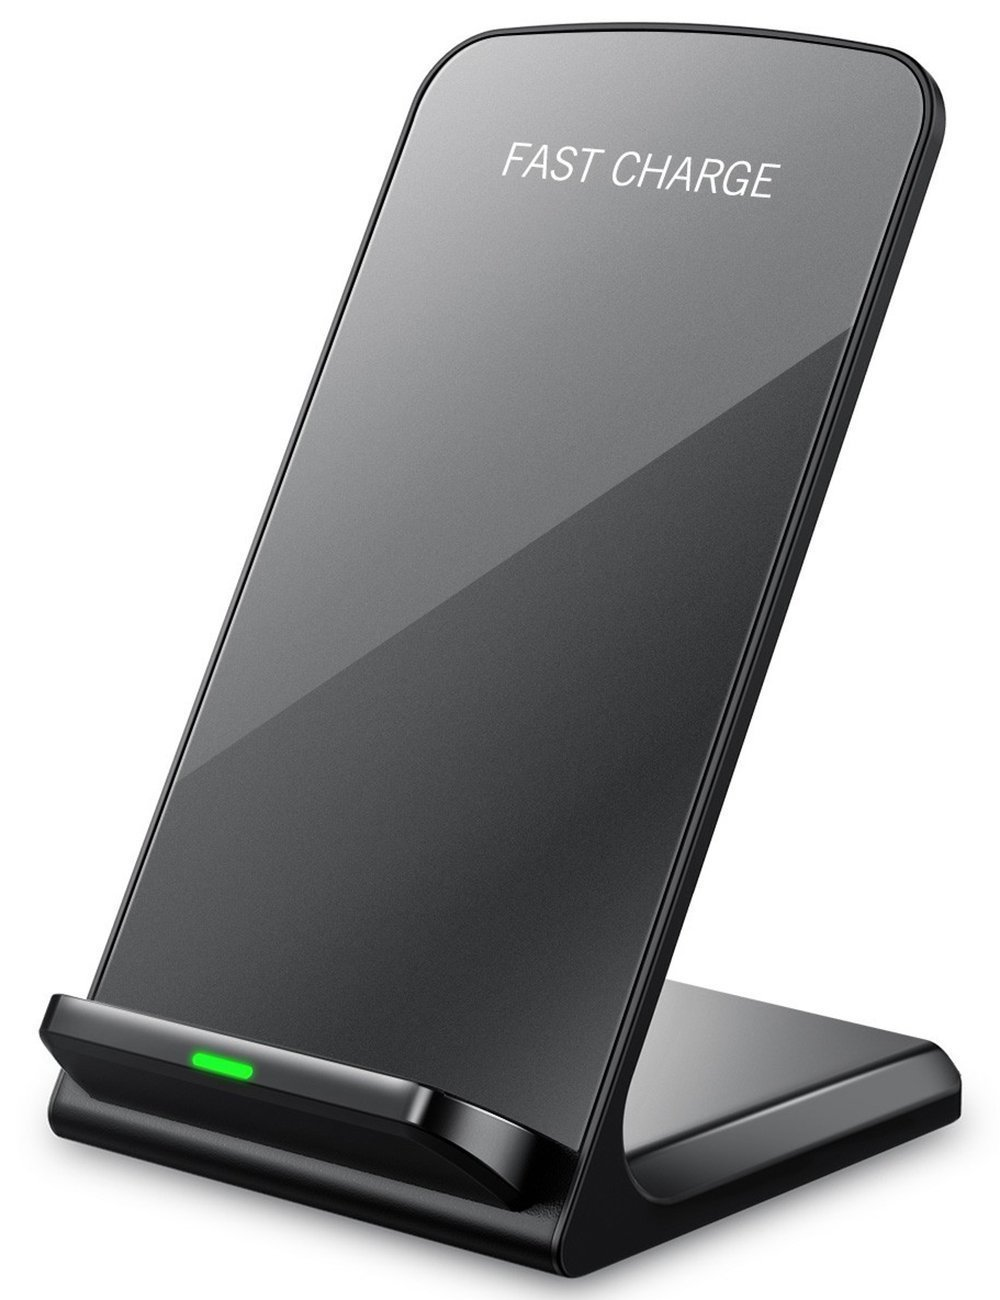 seneo wireless charger qi certified wireless charging stand compatible iphone xs maxxrxsx88 plus 10w galaxy note 9s9s9 plusnote 8s8 - Christmas Gifts For Older Parents